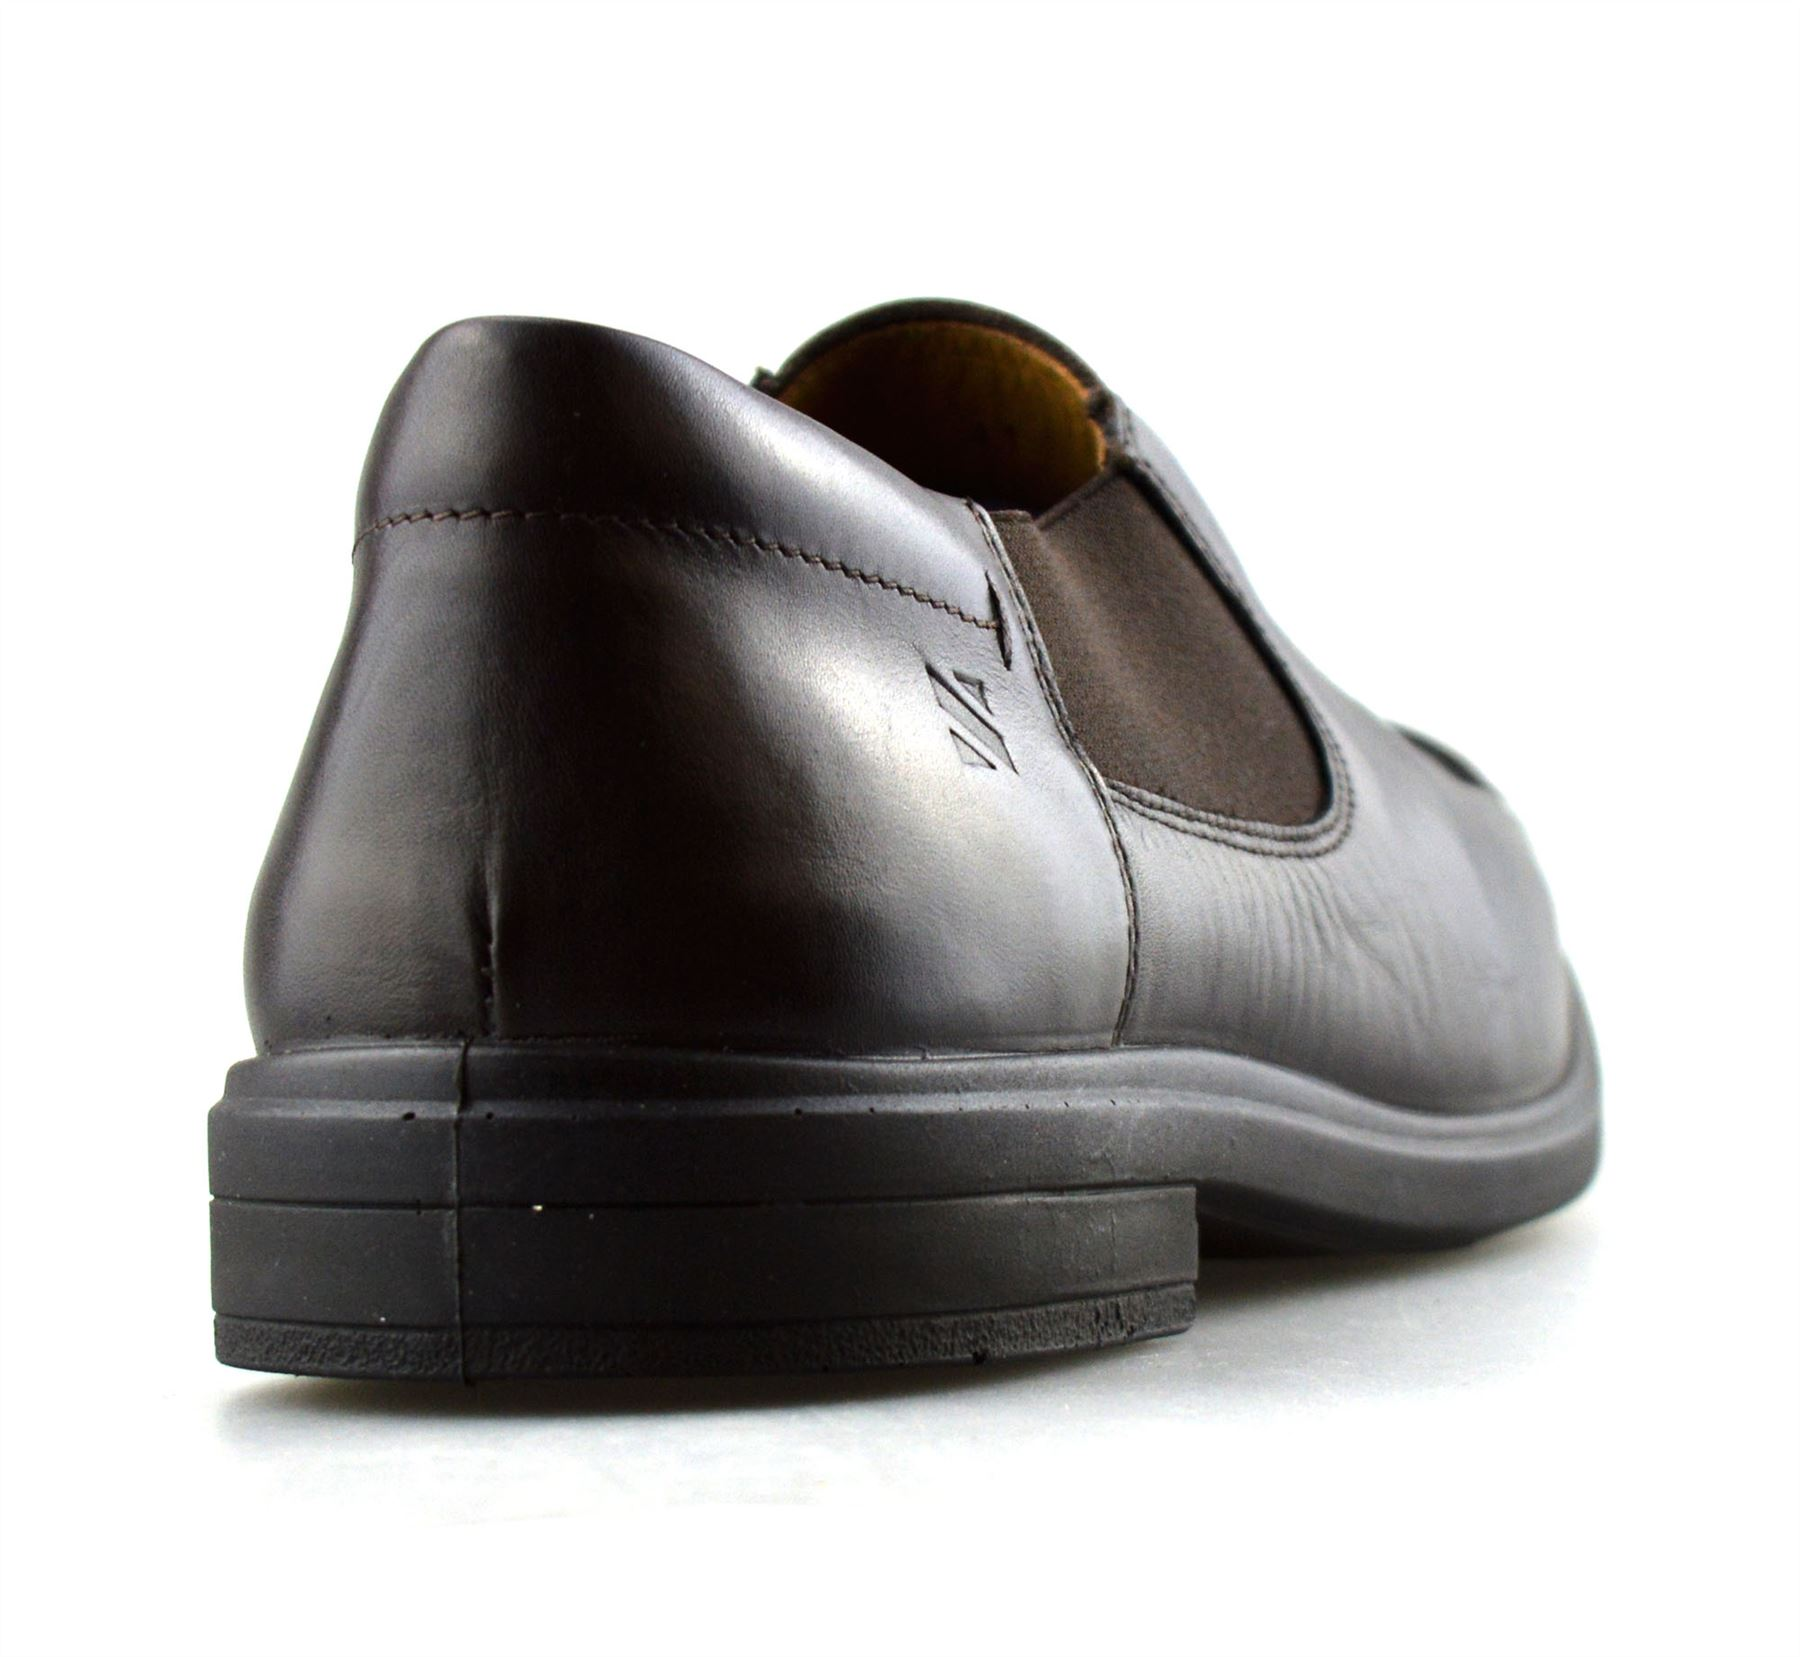 Mens-Leather-Slip-On-Casual-Smart-Designer-Mocassin-Work-Loafers-Shoes-Size thumbnail 10